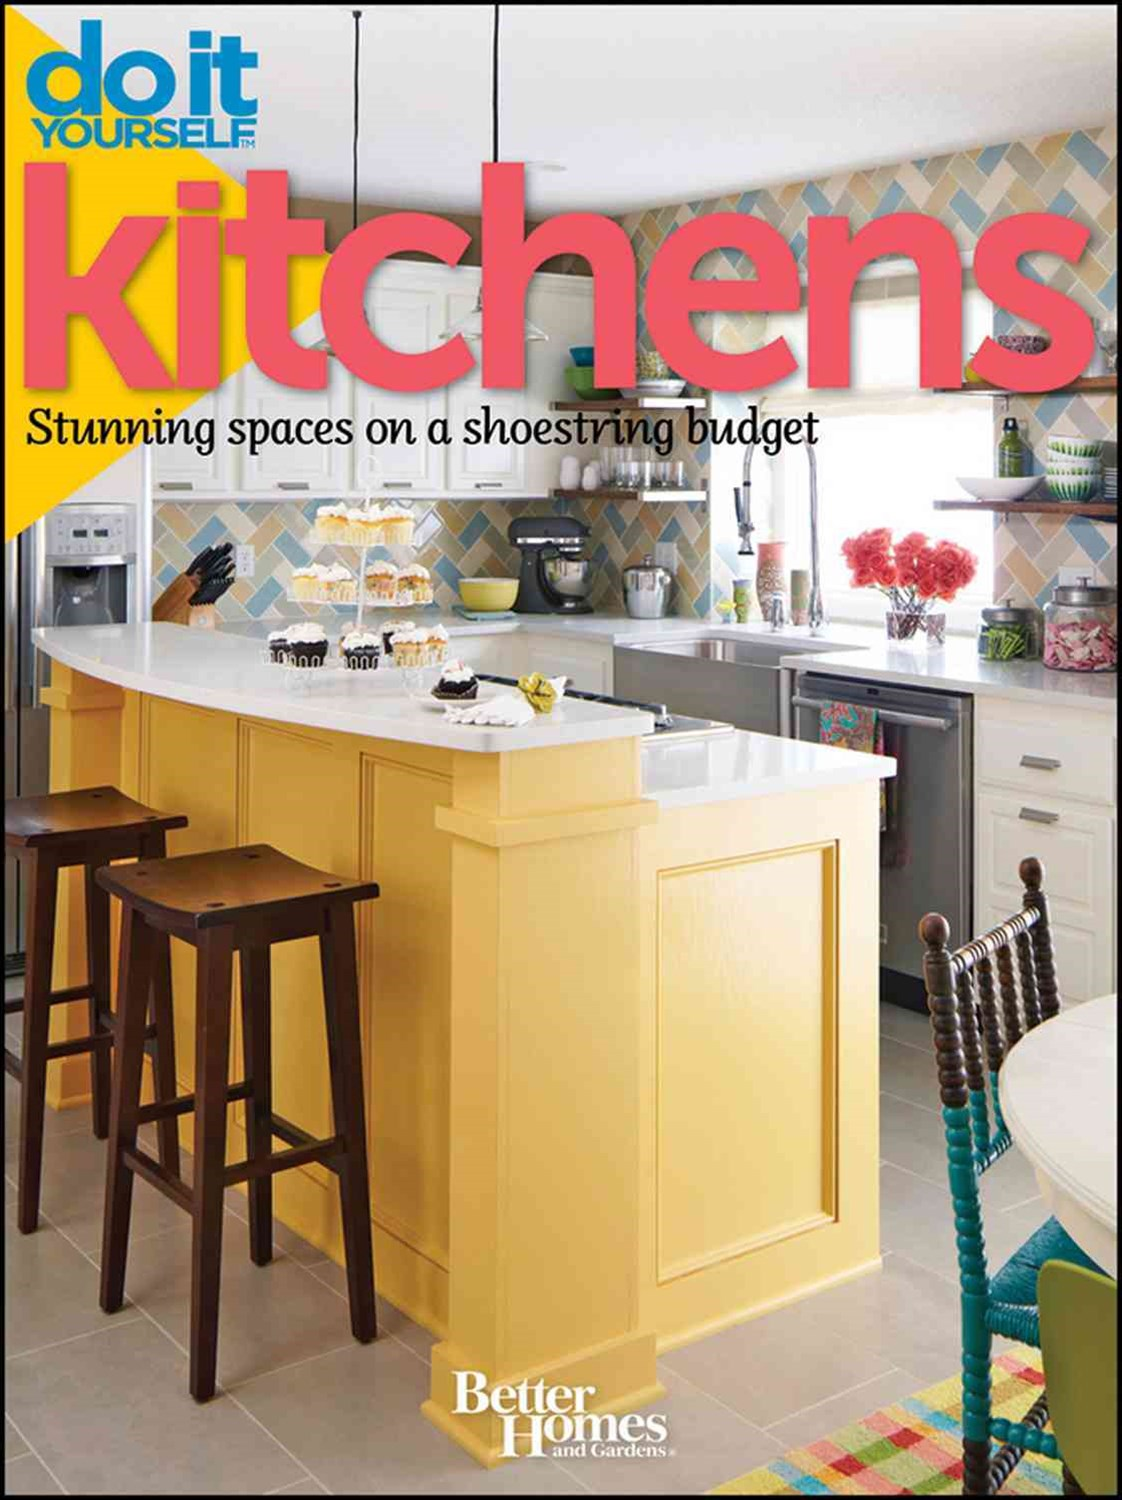 Do It Yourself Kitchens: Better Homes and Gardens